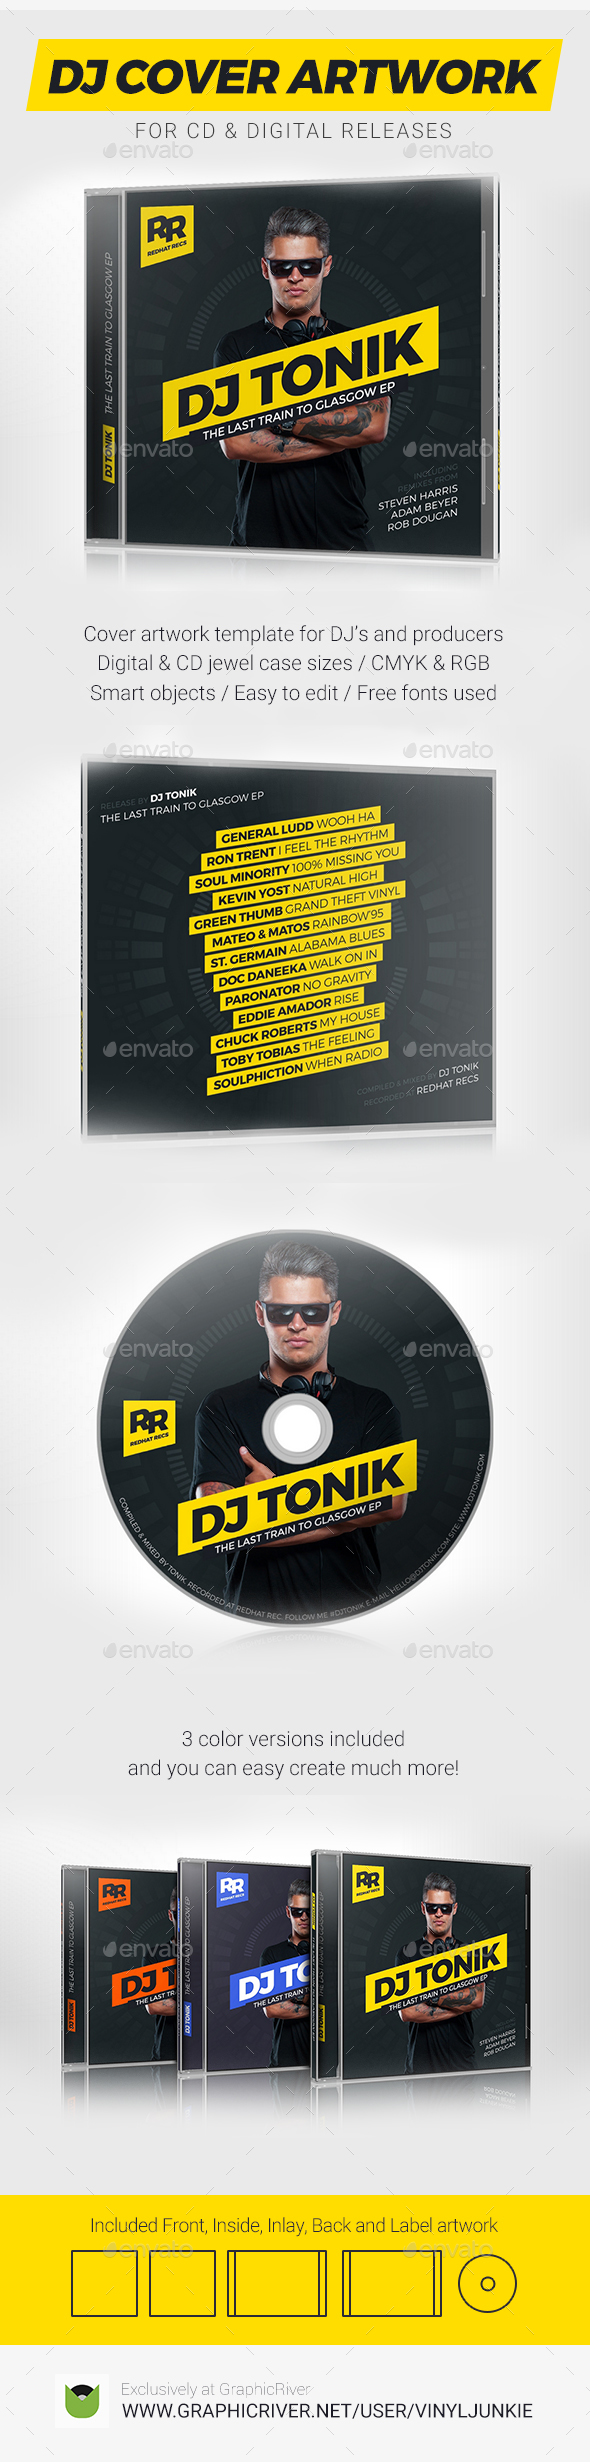 Prodj dj mix album cd cover artwork psd template by for Dj press kit template free